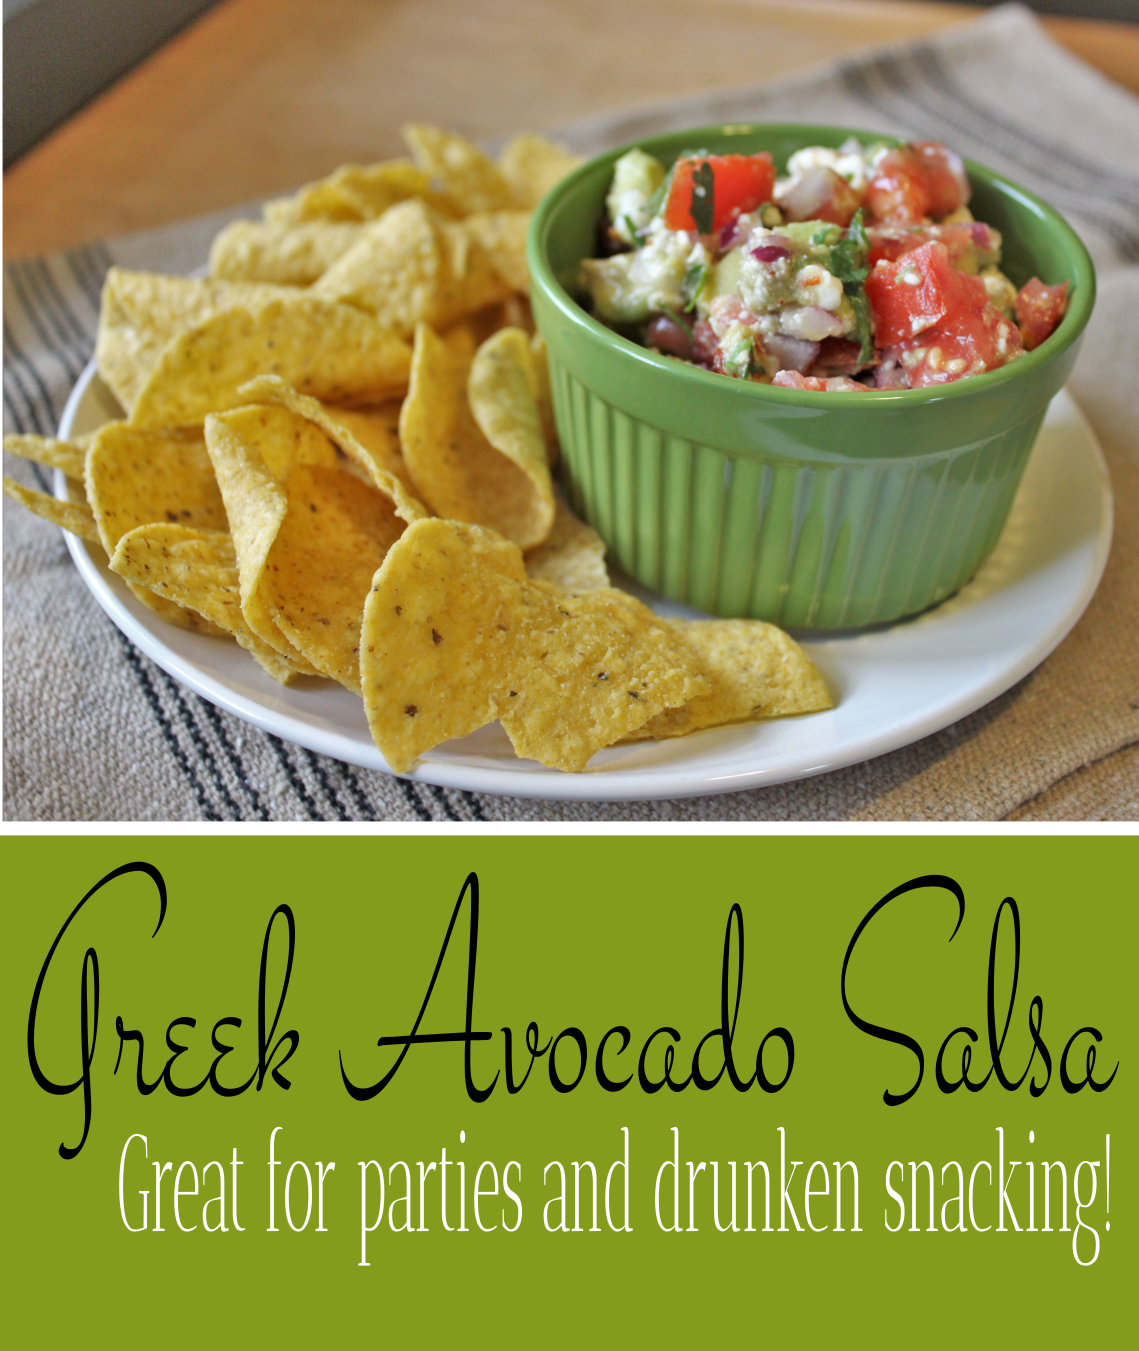 Greek Avocado Salsa